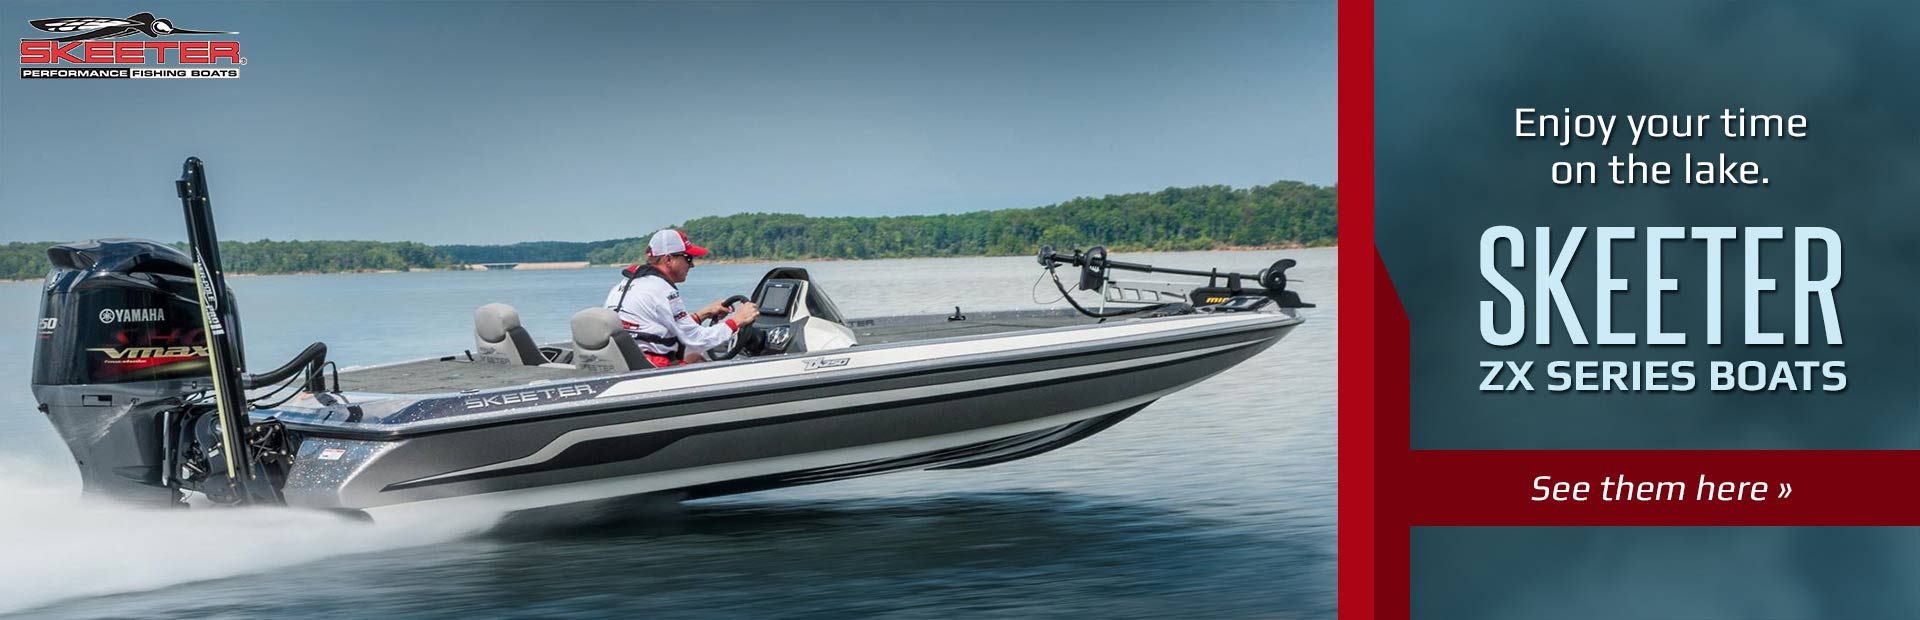 Skeeter ZX Series Boats: Click here to view the models.